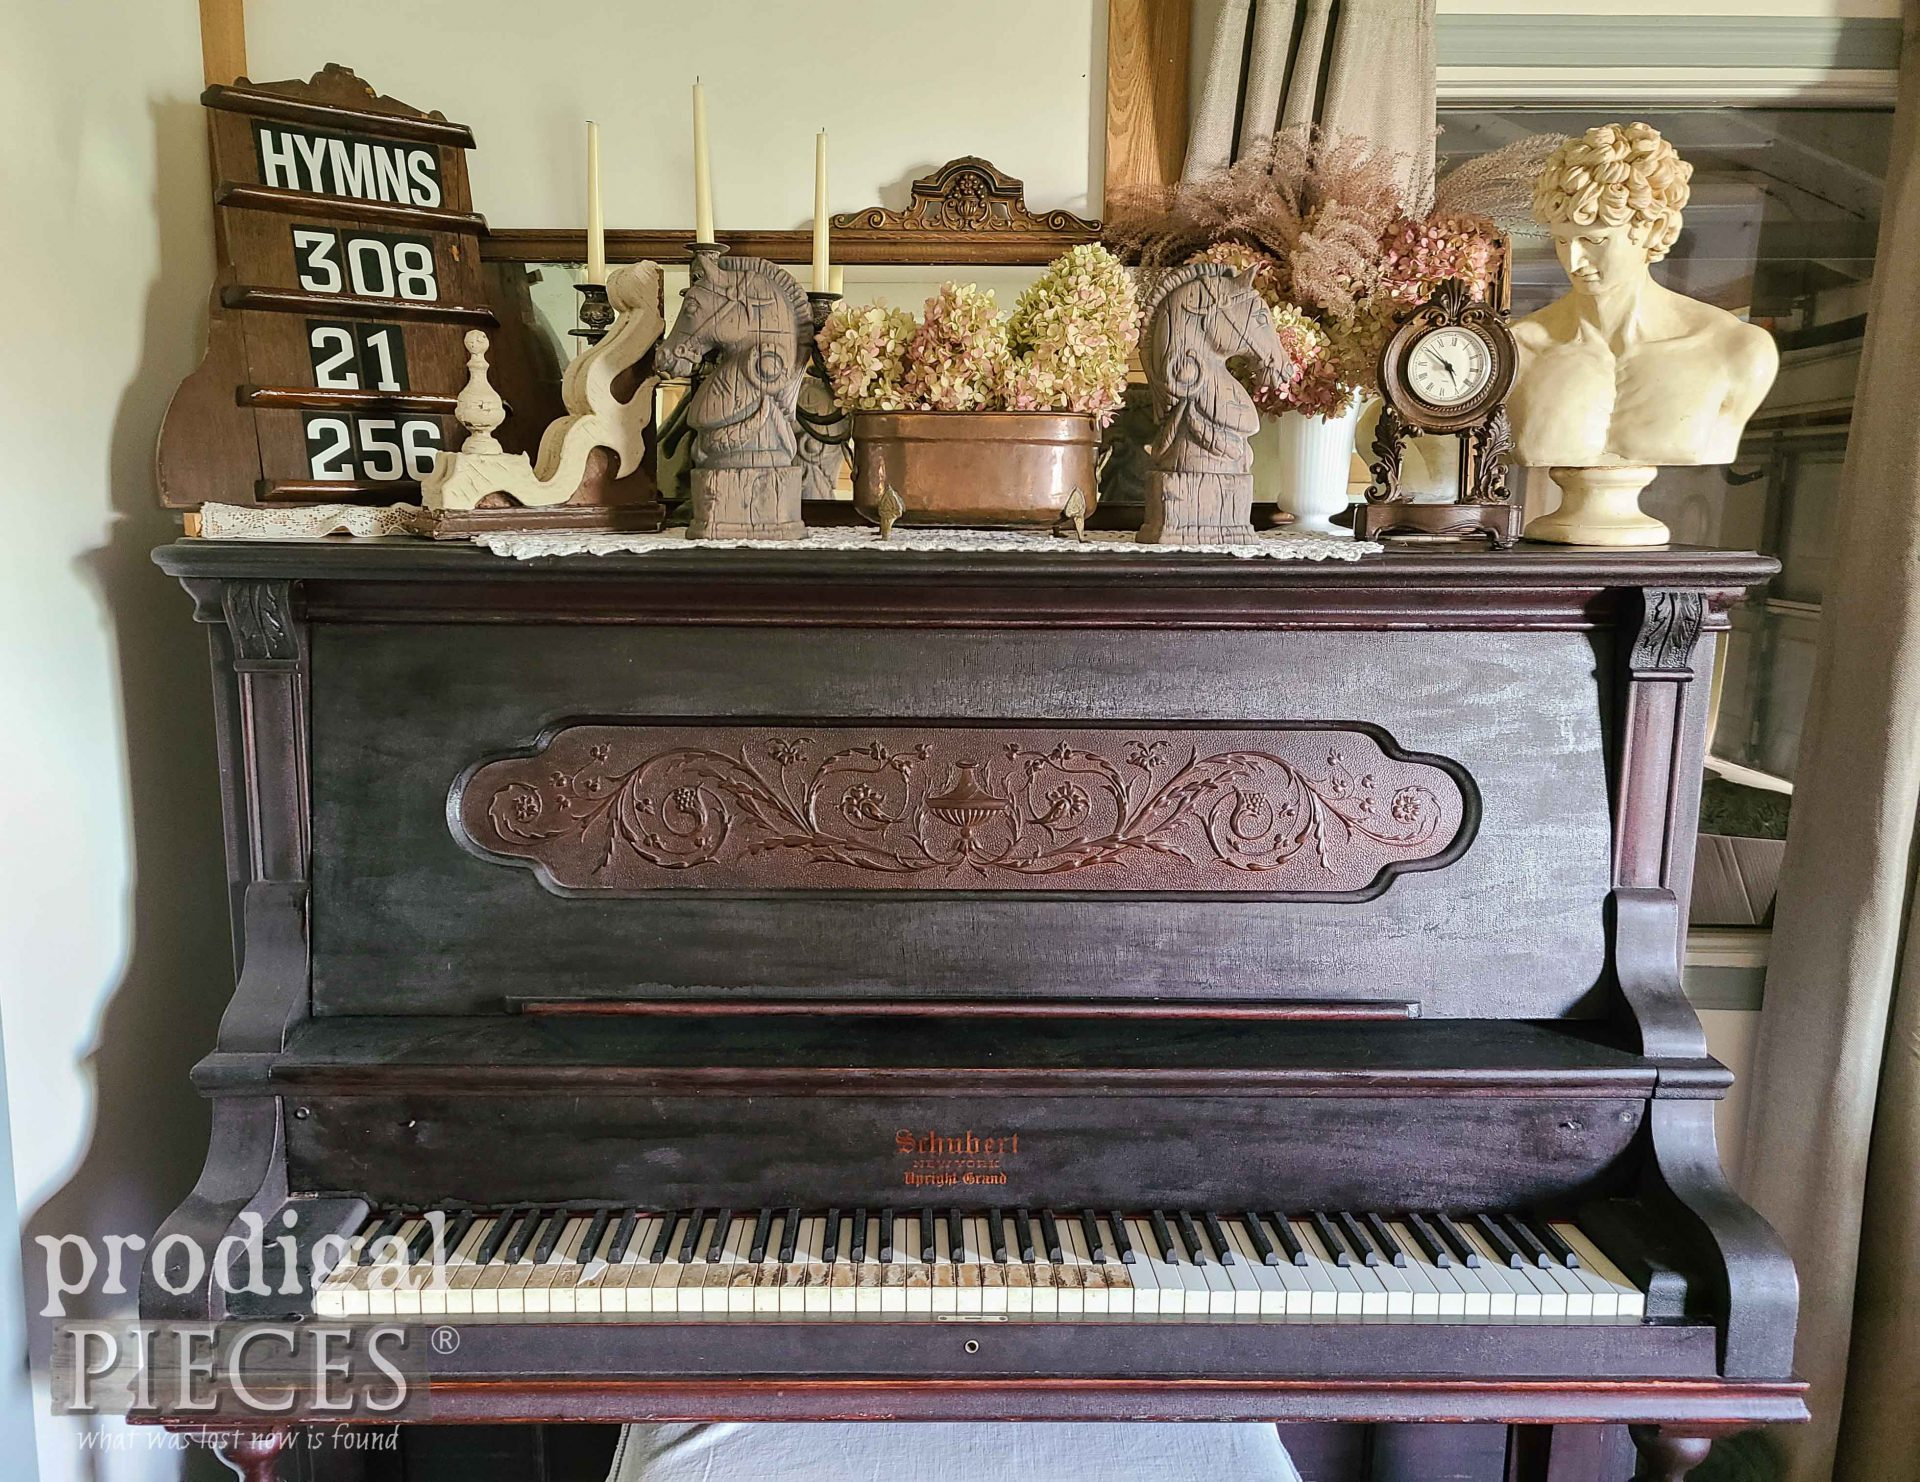 Vintage Horse Head Bookends on Antique Upright Grand Piano by Larissa of Prodigal Pieces | prodigalpieces.com #prodigalpieces #antique #home #farmhouse